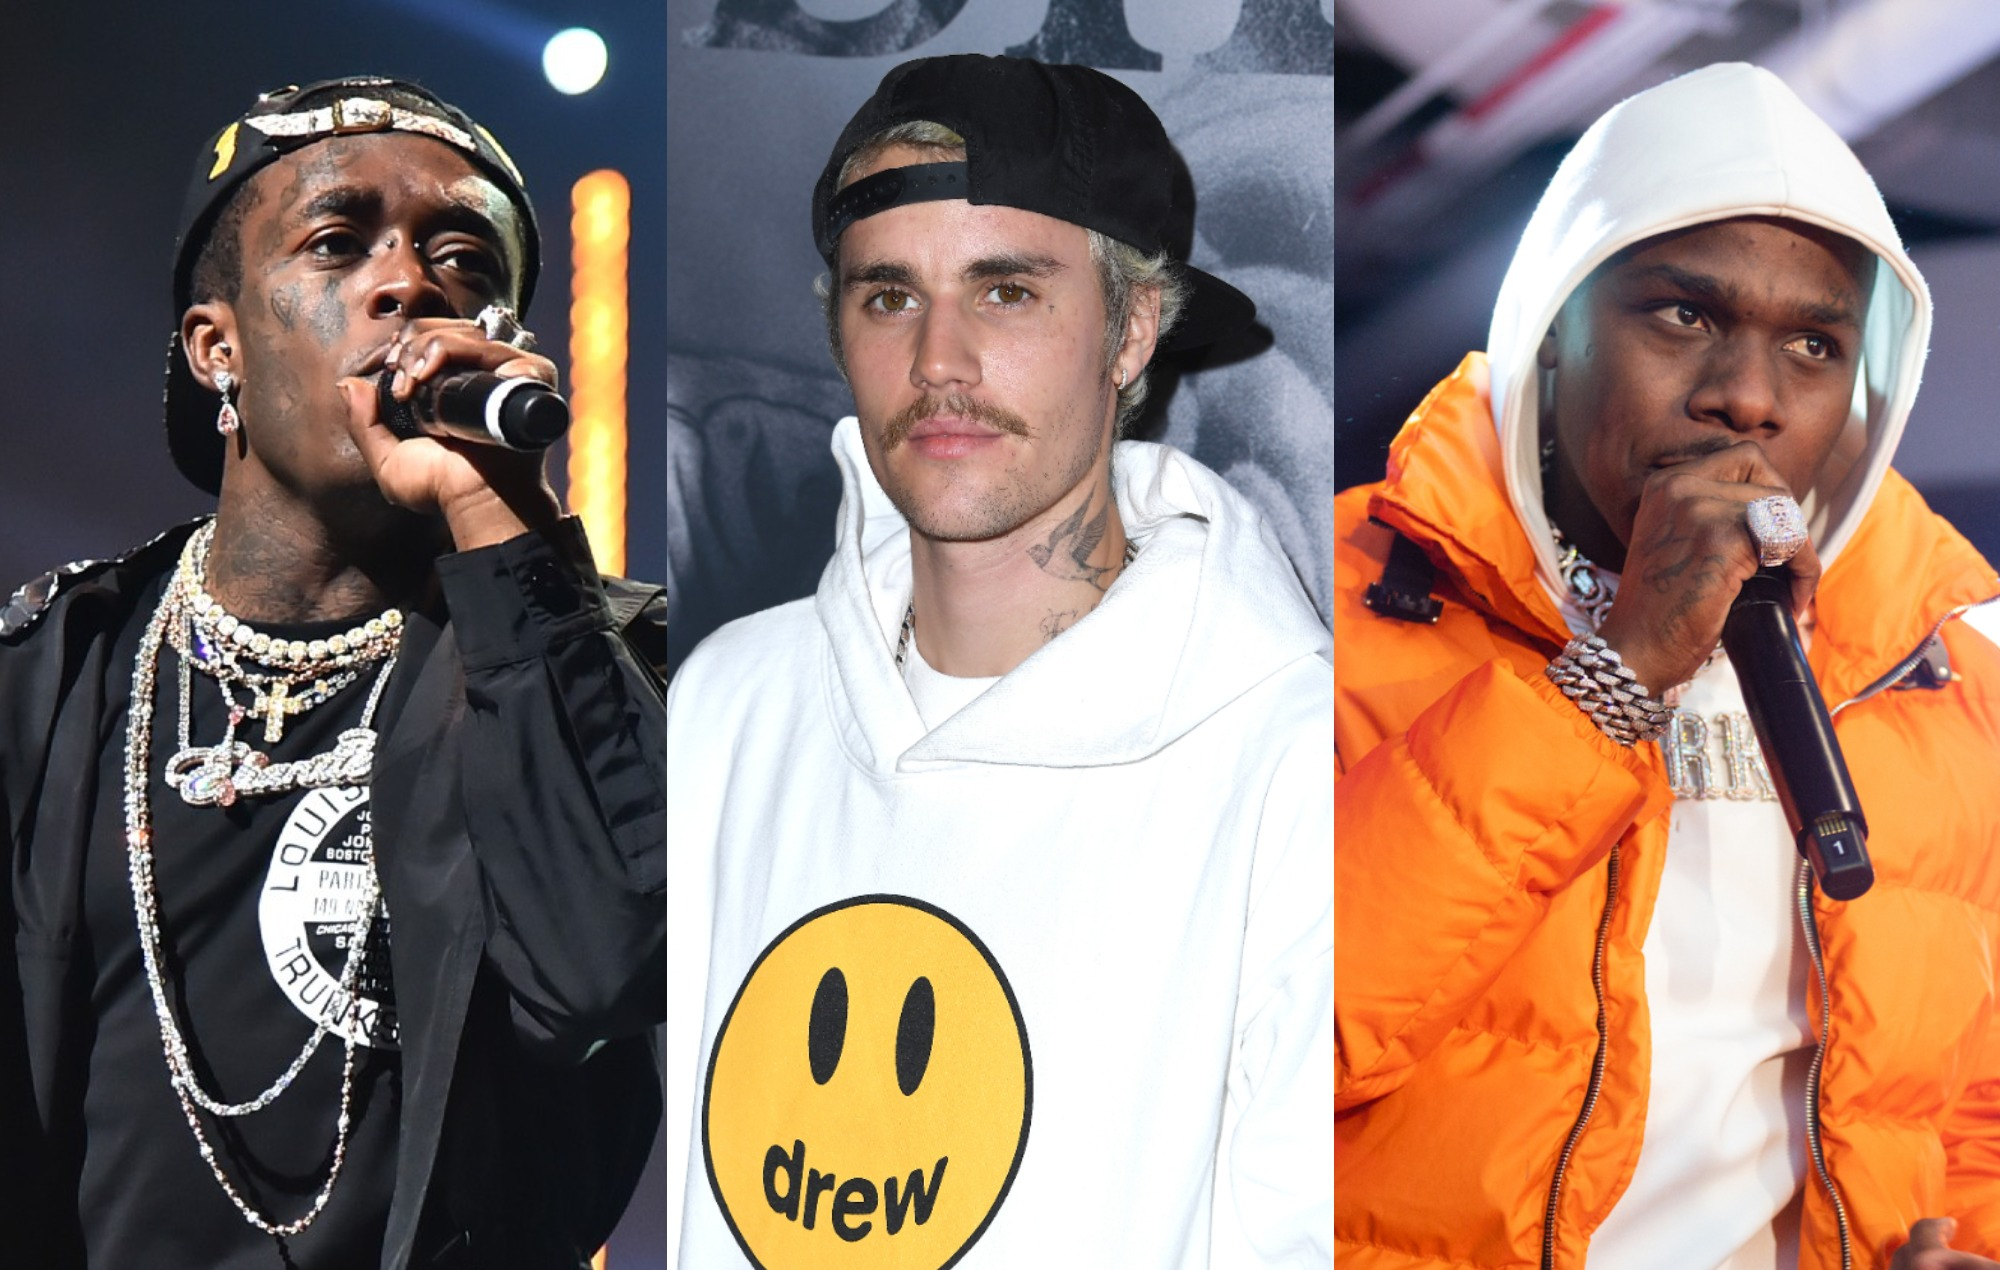 Justin Bieber releases 'Justice' deluxe edition featuring Lil Uzi Vert, DaBaby and more